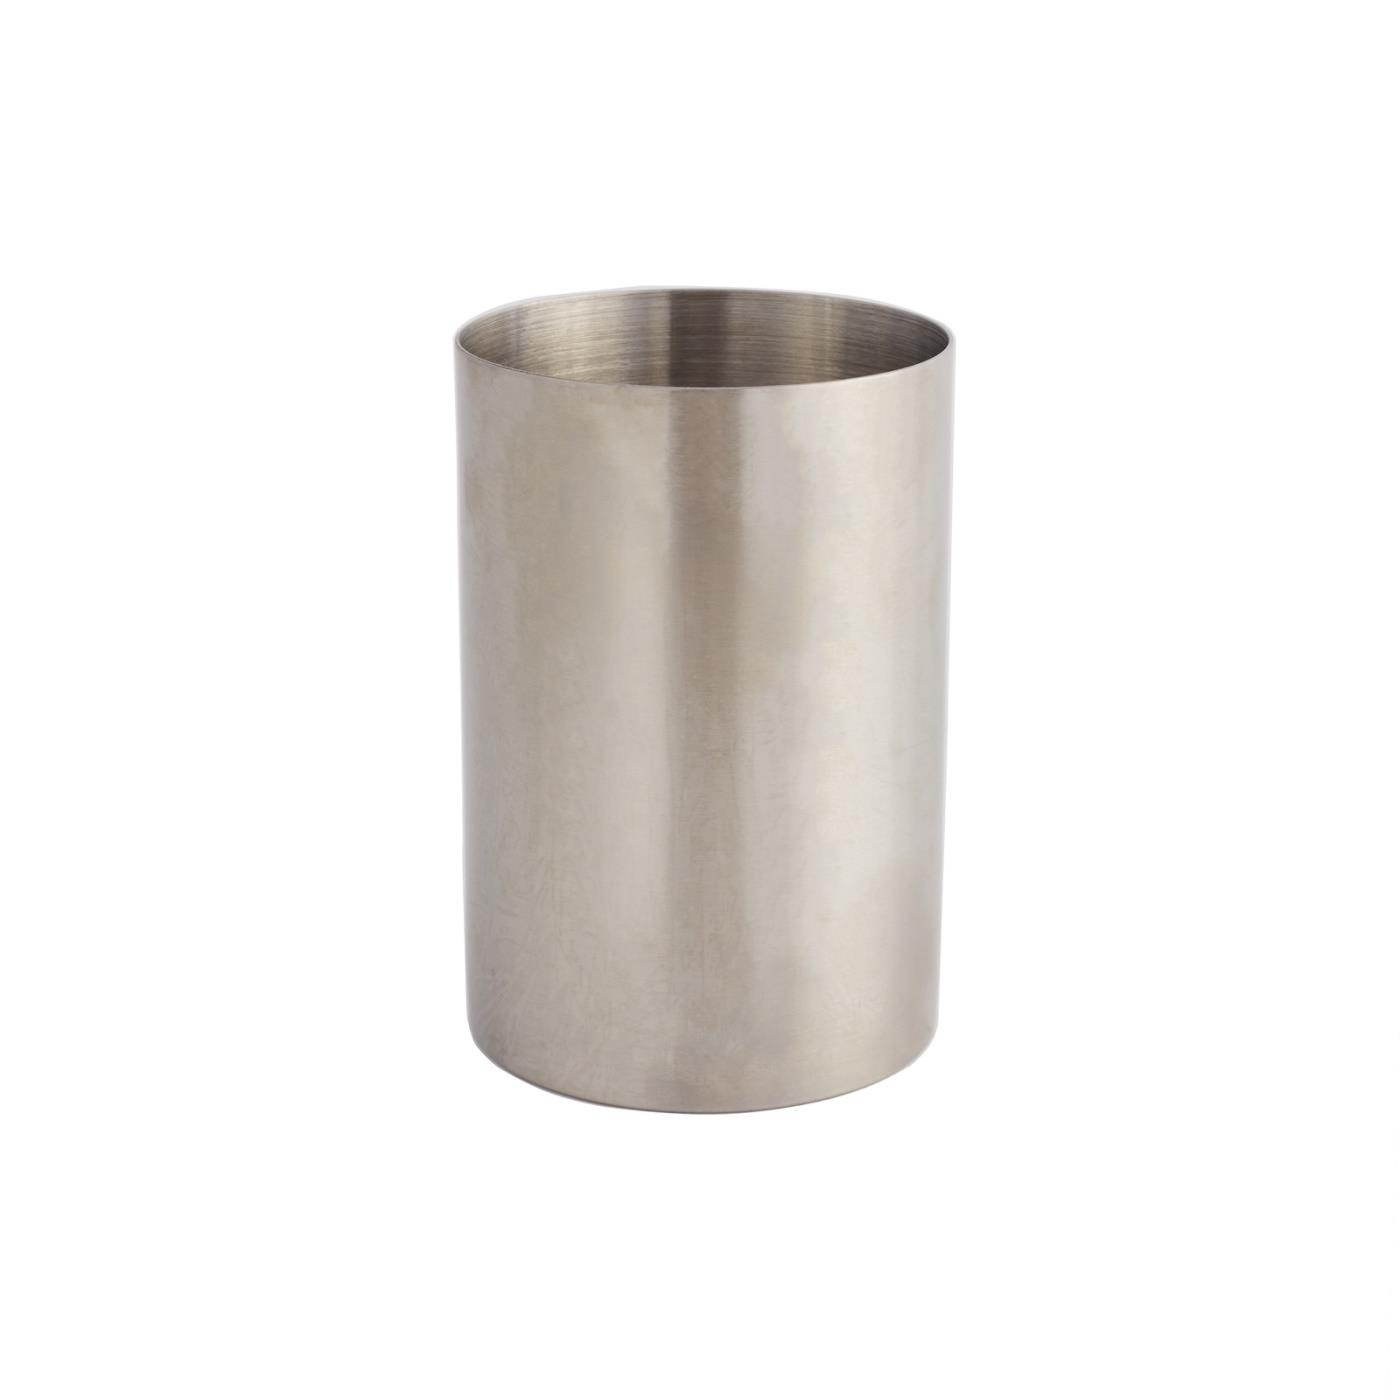 Stainless Steel Holder